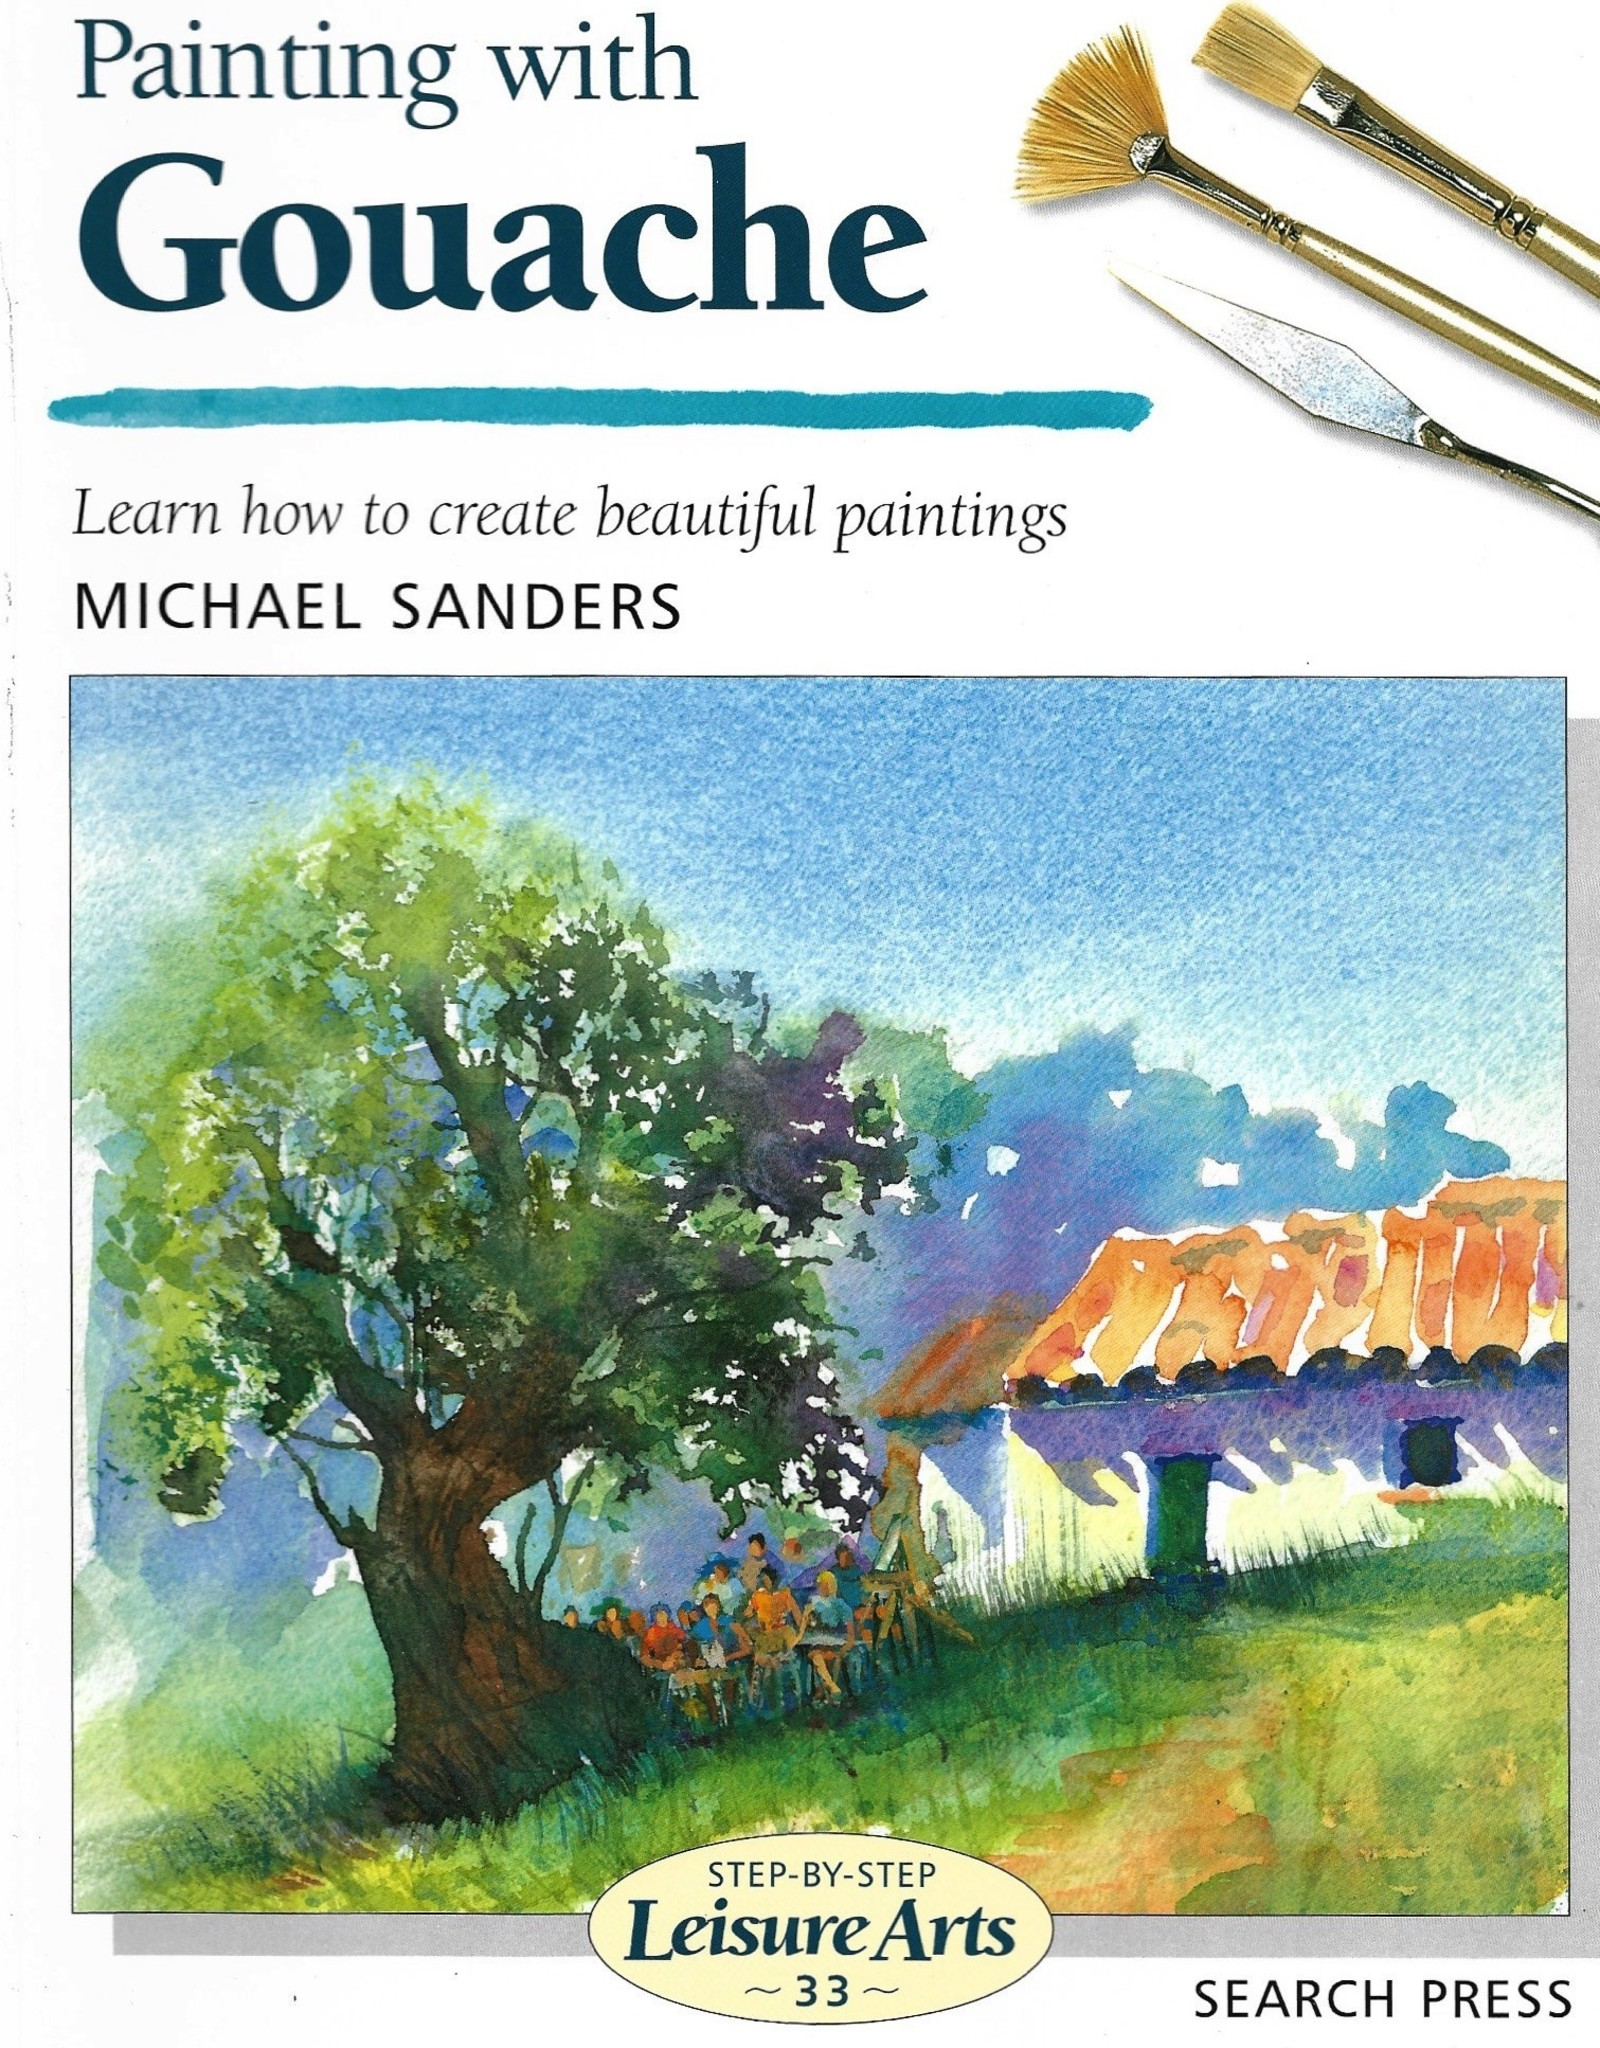 Painting with Gouache: Step by Step